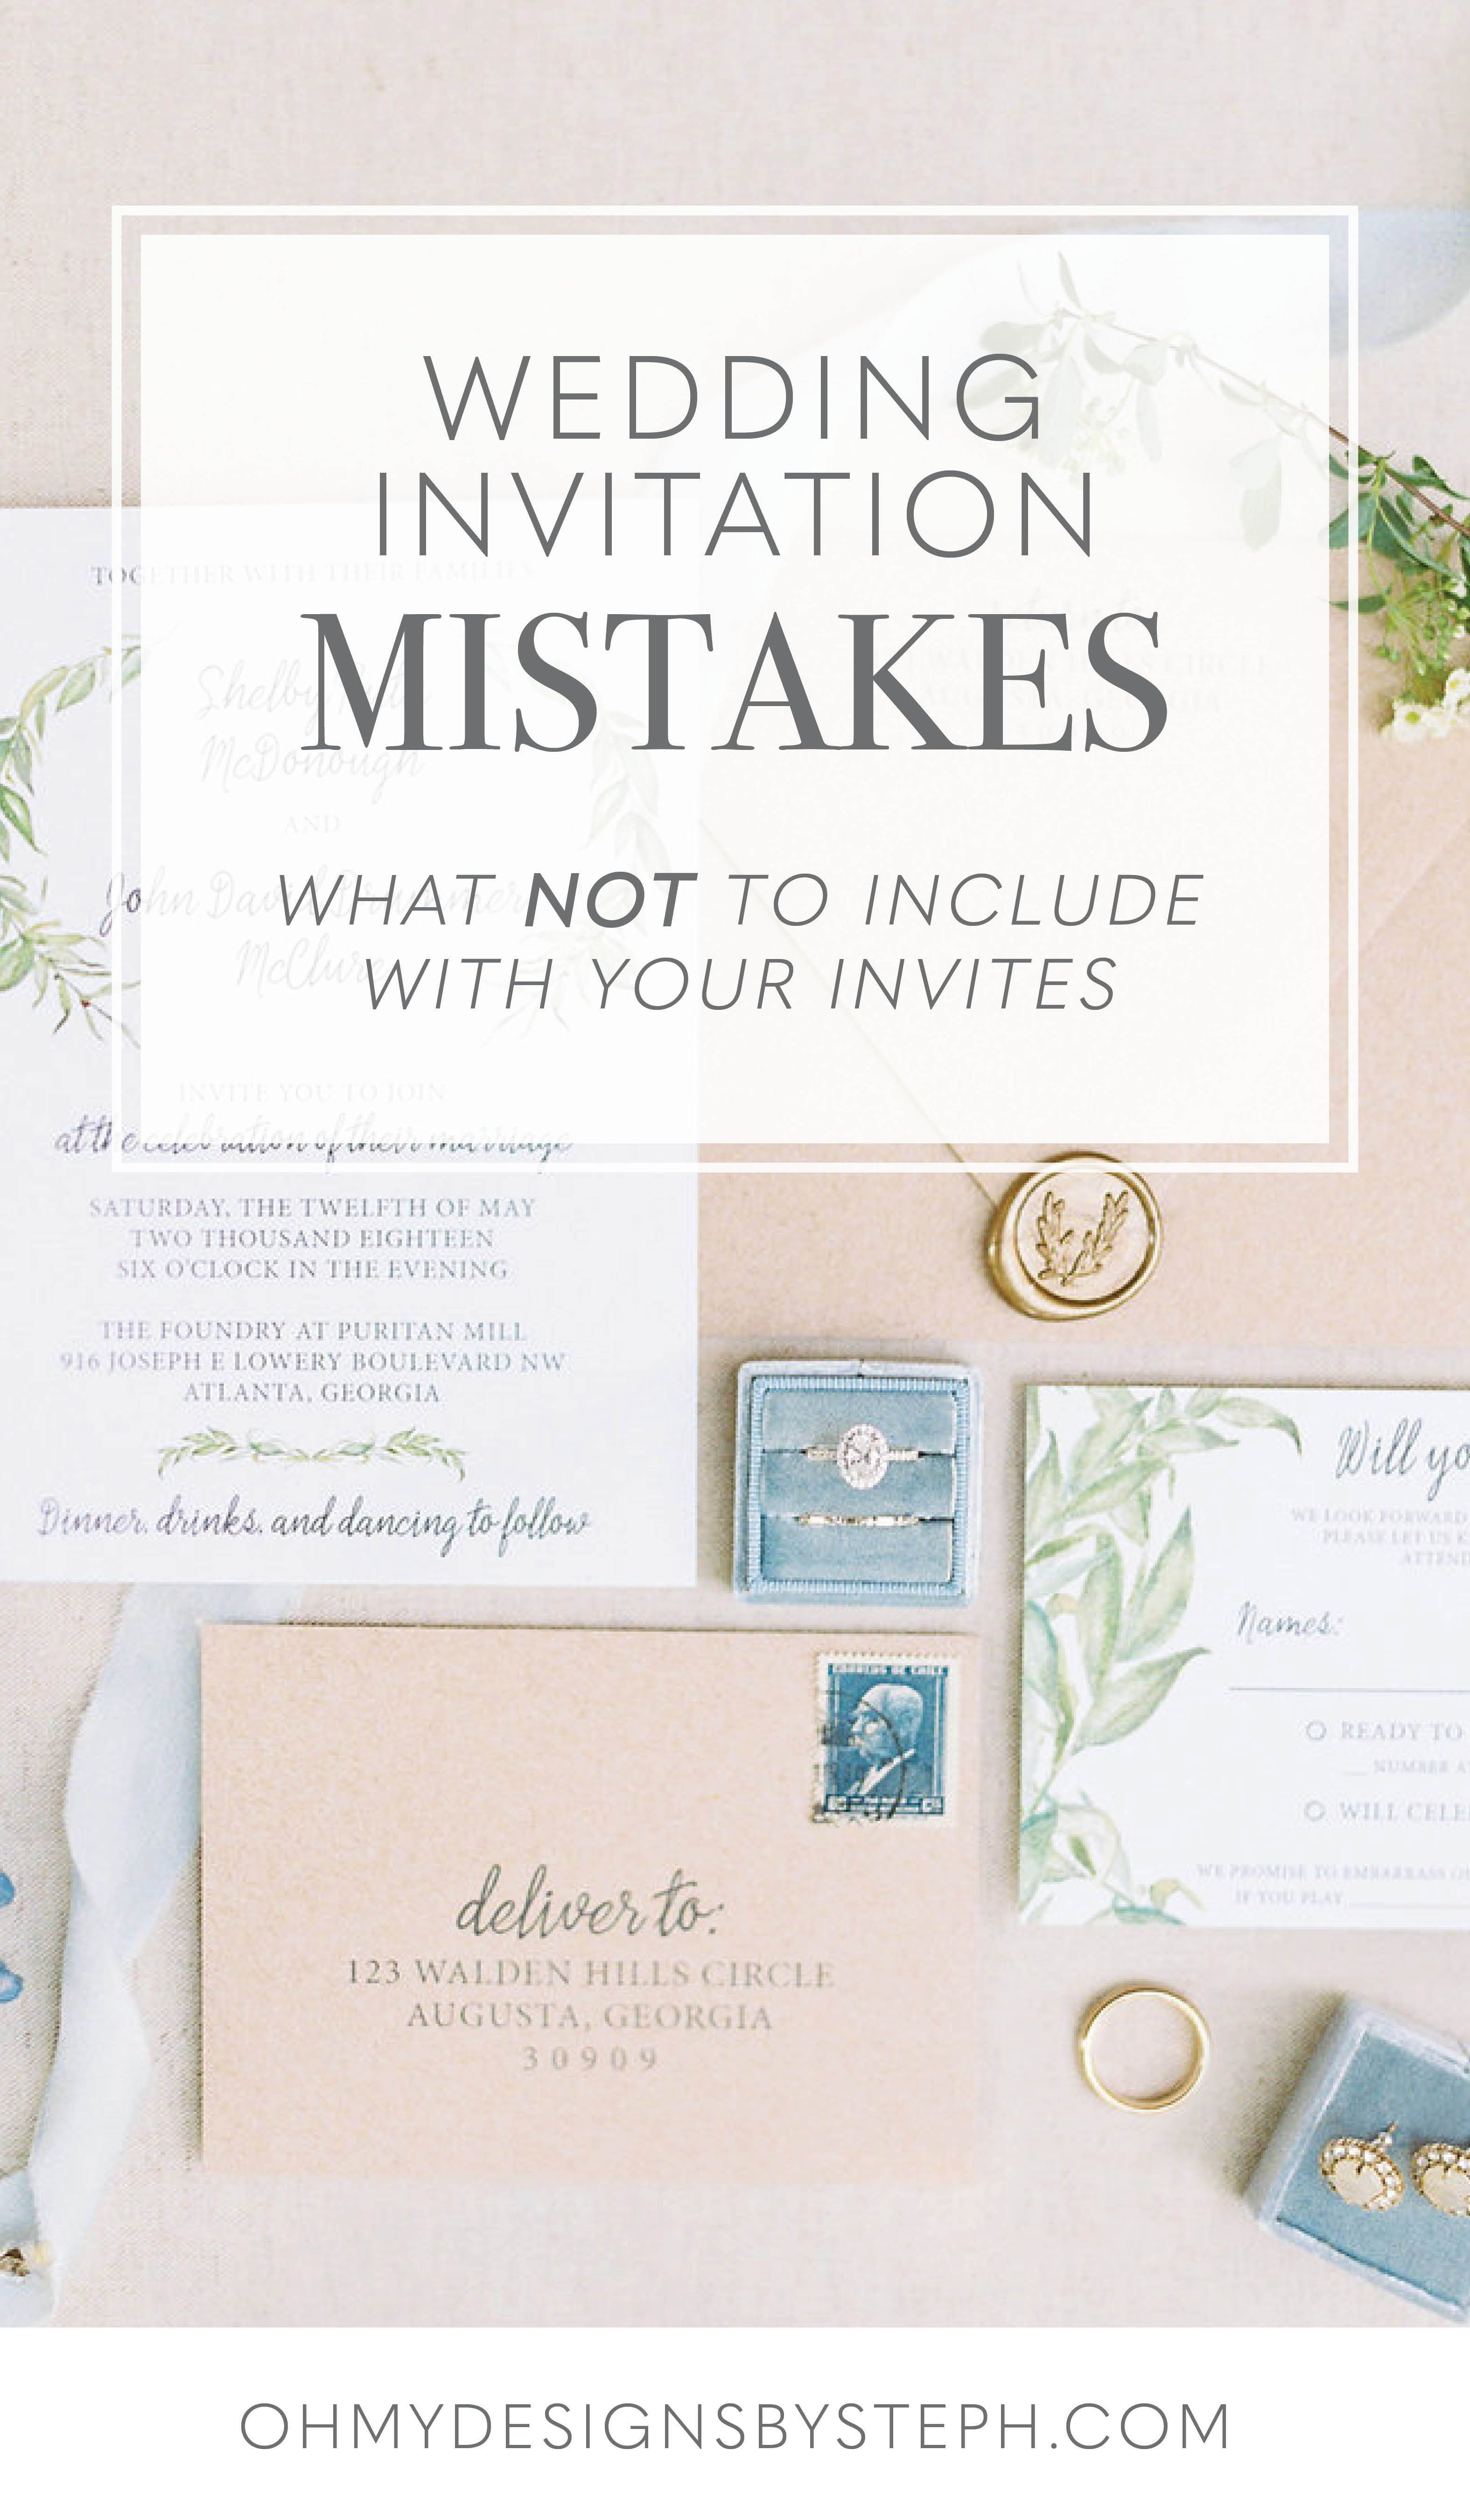 Invitation Mistakes What Not To Include On Wedding Invitations Oh My Designs By Steph Wedding Invitations Diy Wedding Invitation Wording Examples Creative Wedding Invitations